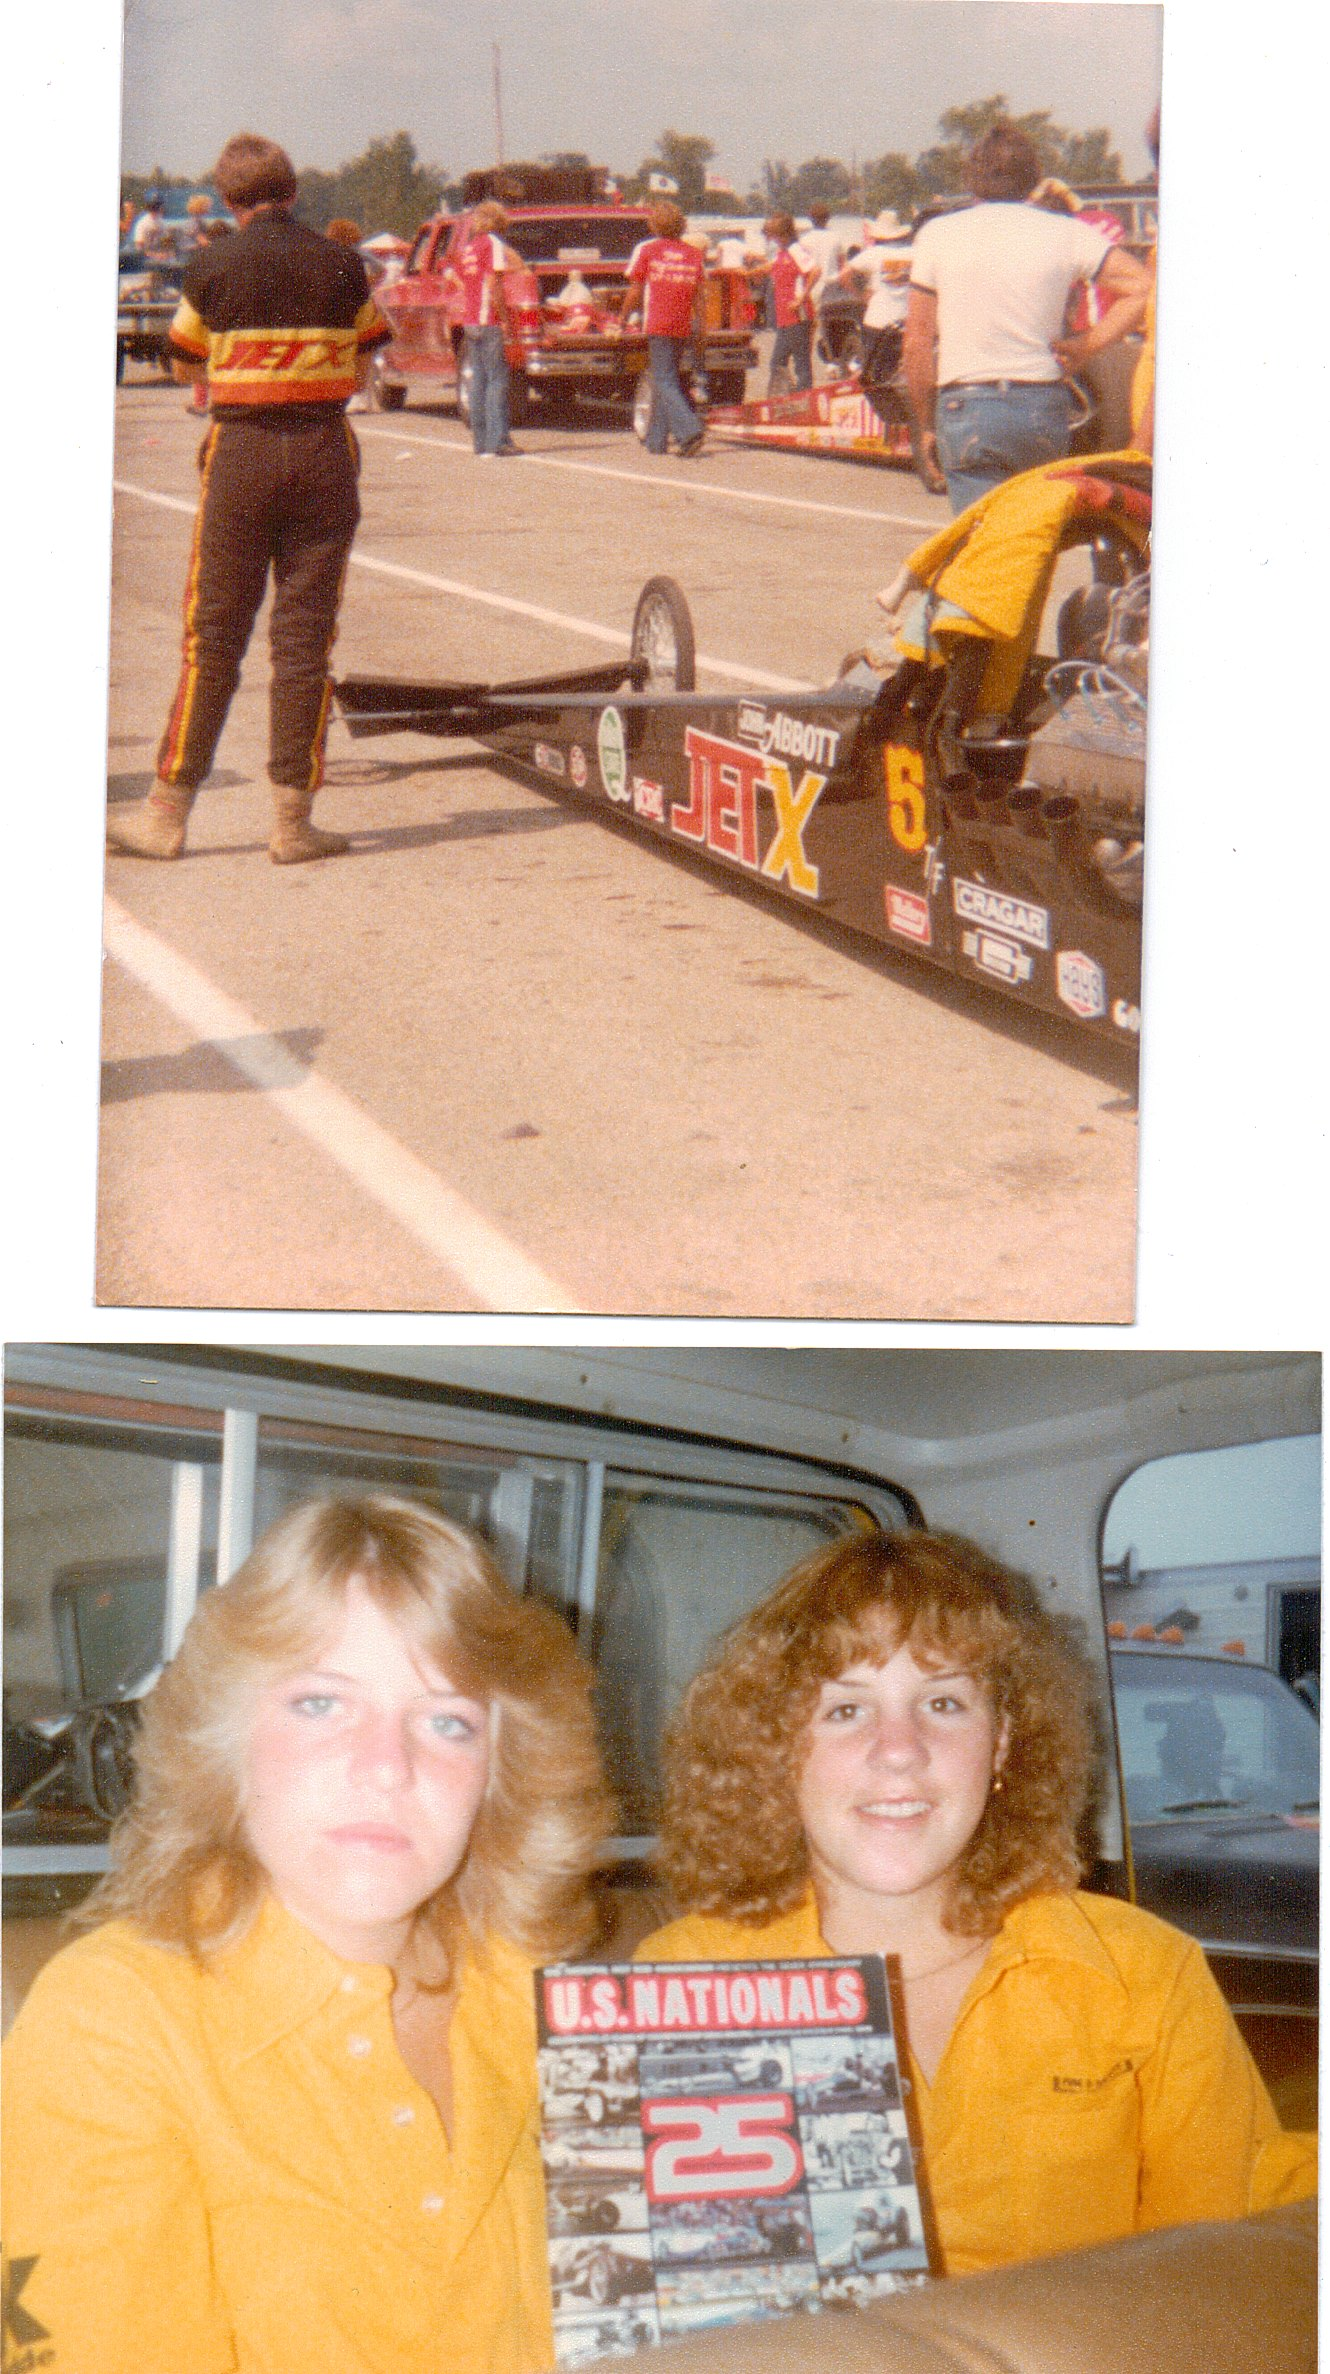 John Abbott's Jet-X Top Fuel Dragster. He made it to the finals of the U.S. Nationals at Indianapolis Raceway Park (1979). Between rounds...and hanging out in the truck in our crew shirts... (that's me on the right!)